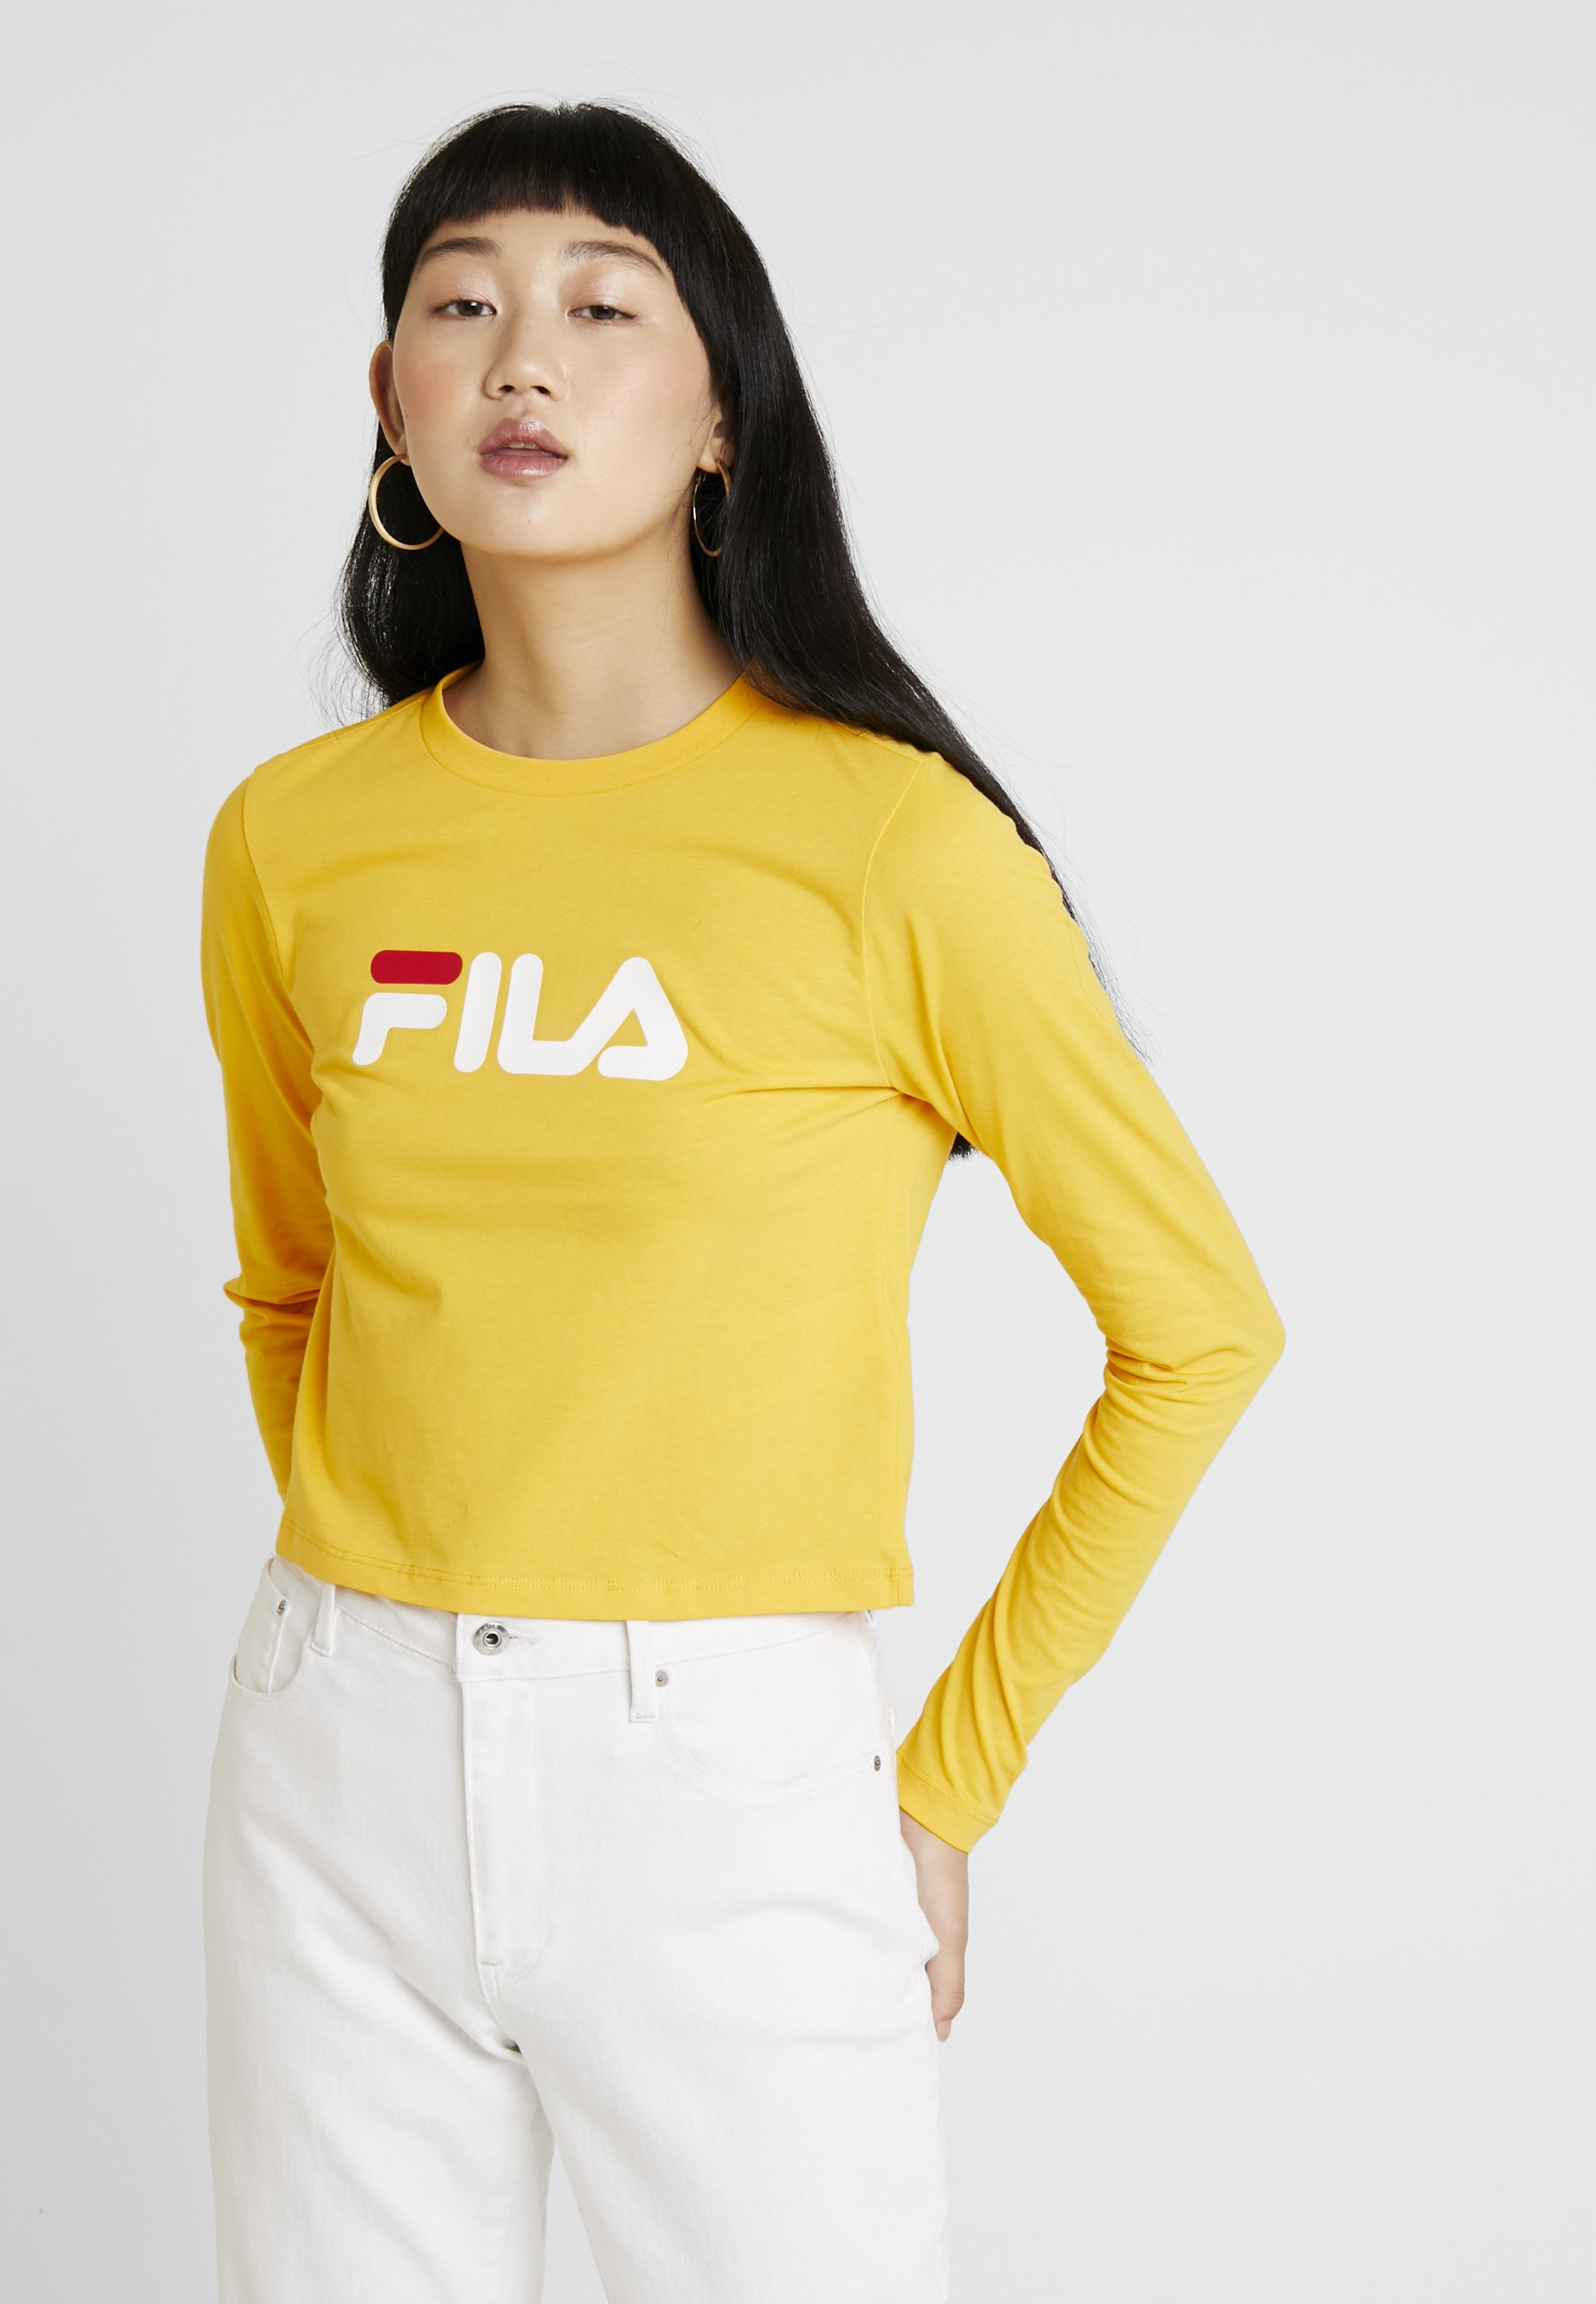 Cropped SleevedT shirt À Manches Citrus Long Longues Fila UGqVzpSM